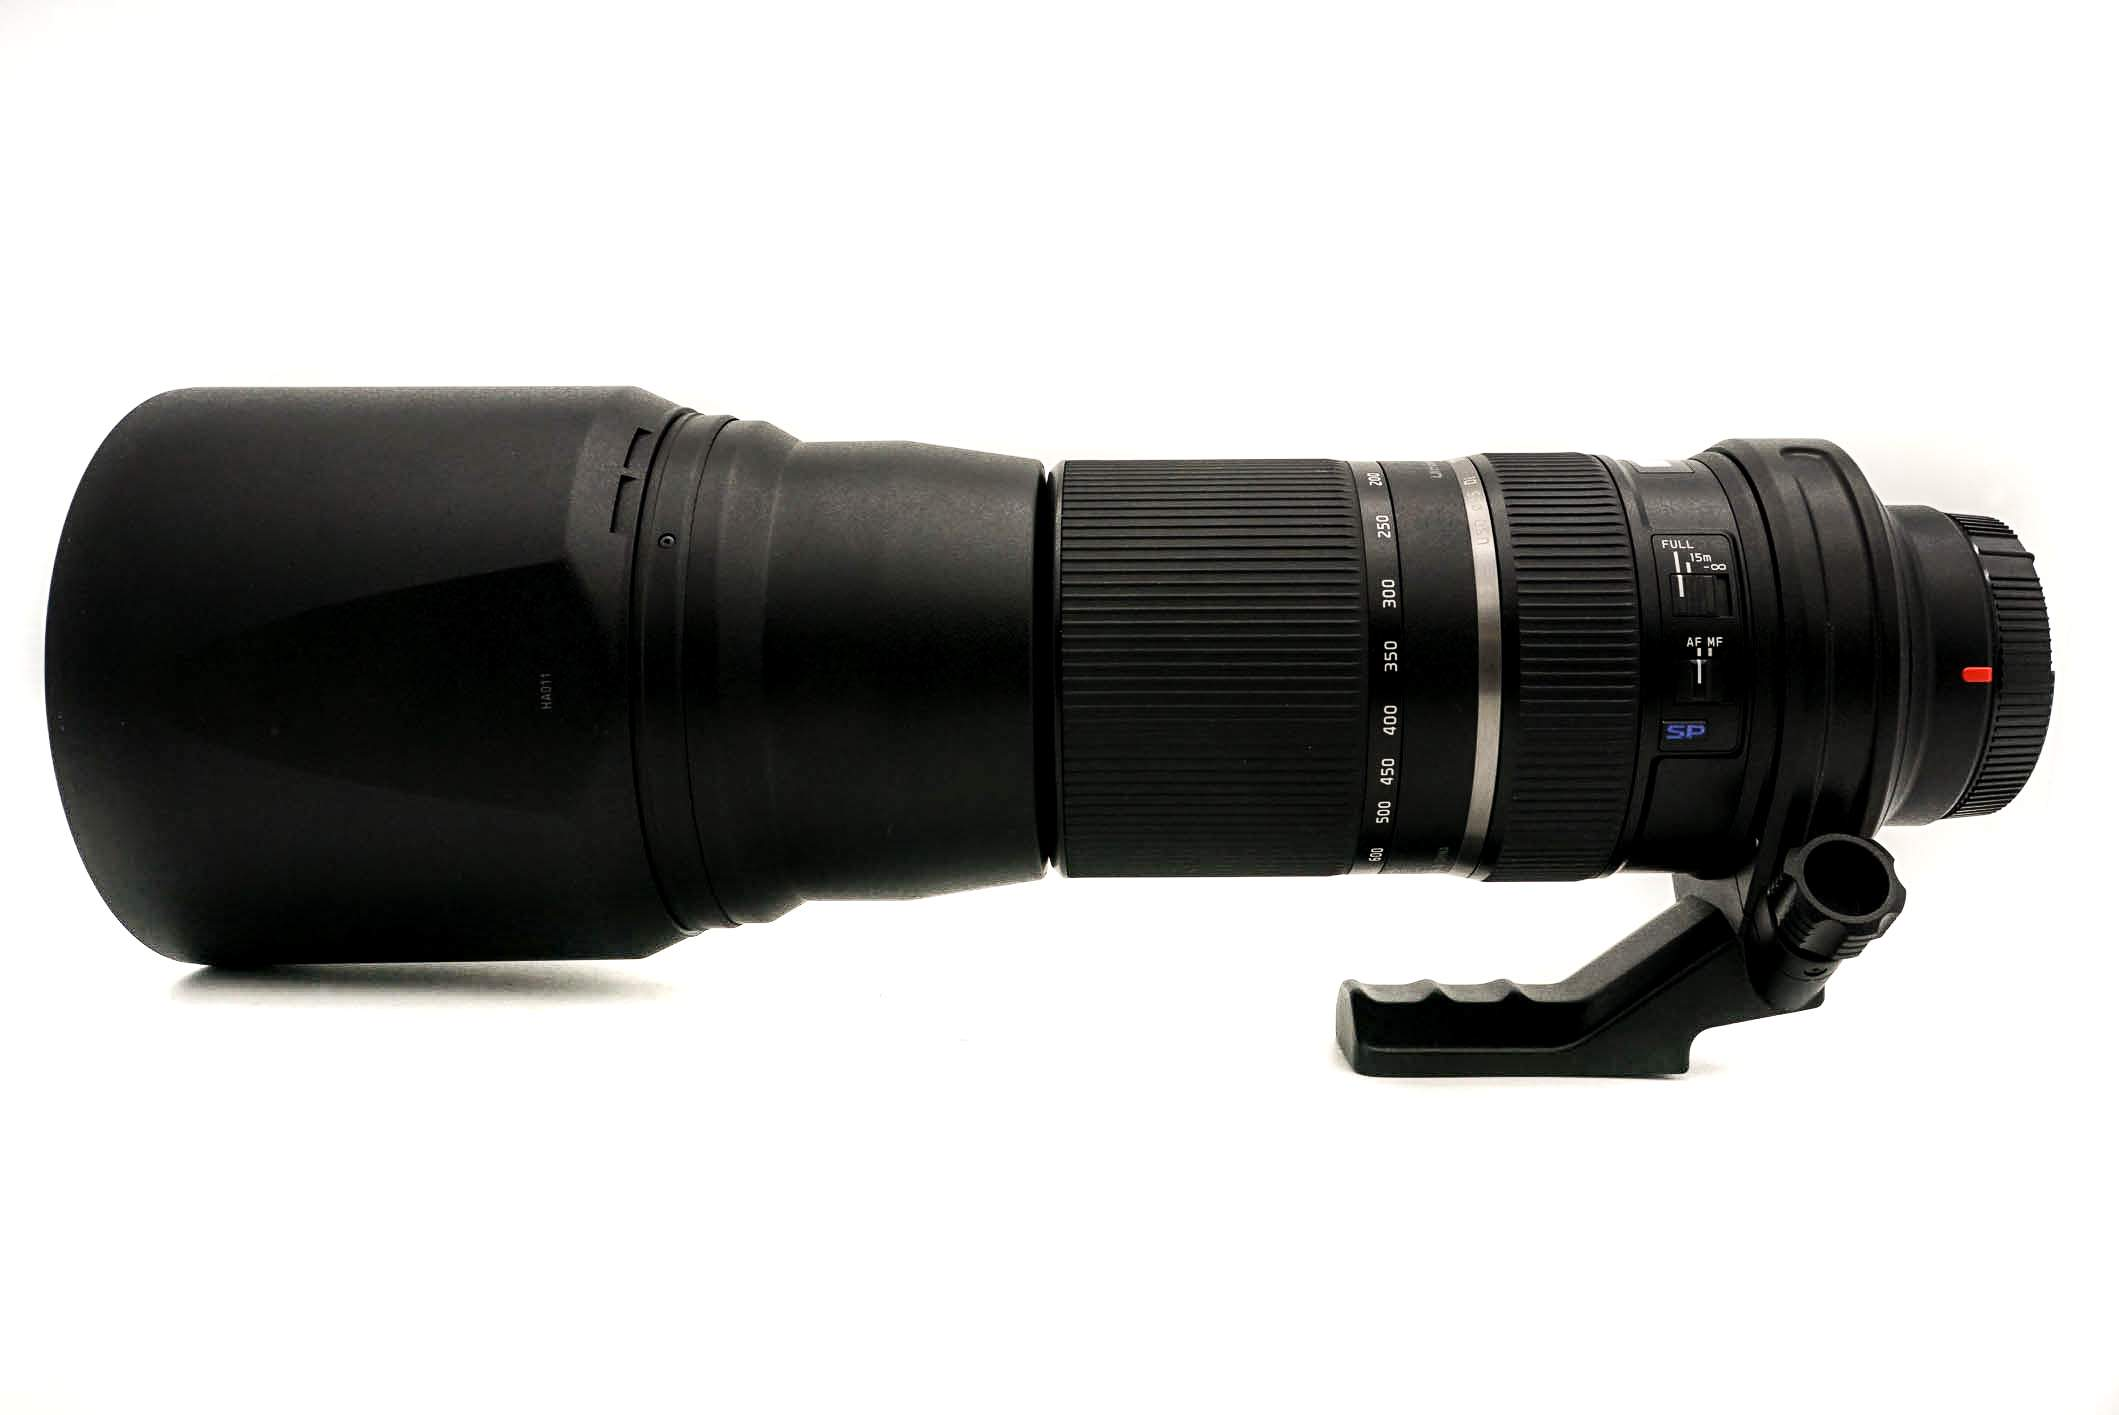 Tamron Sp 150 600mm F5 63 Di Vc Usd Sony A Mount Rent From 53 F 5 G2 For Canon Ef